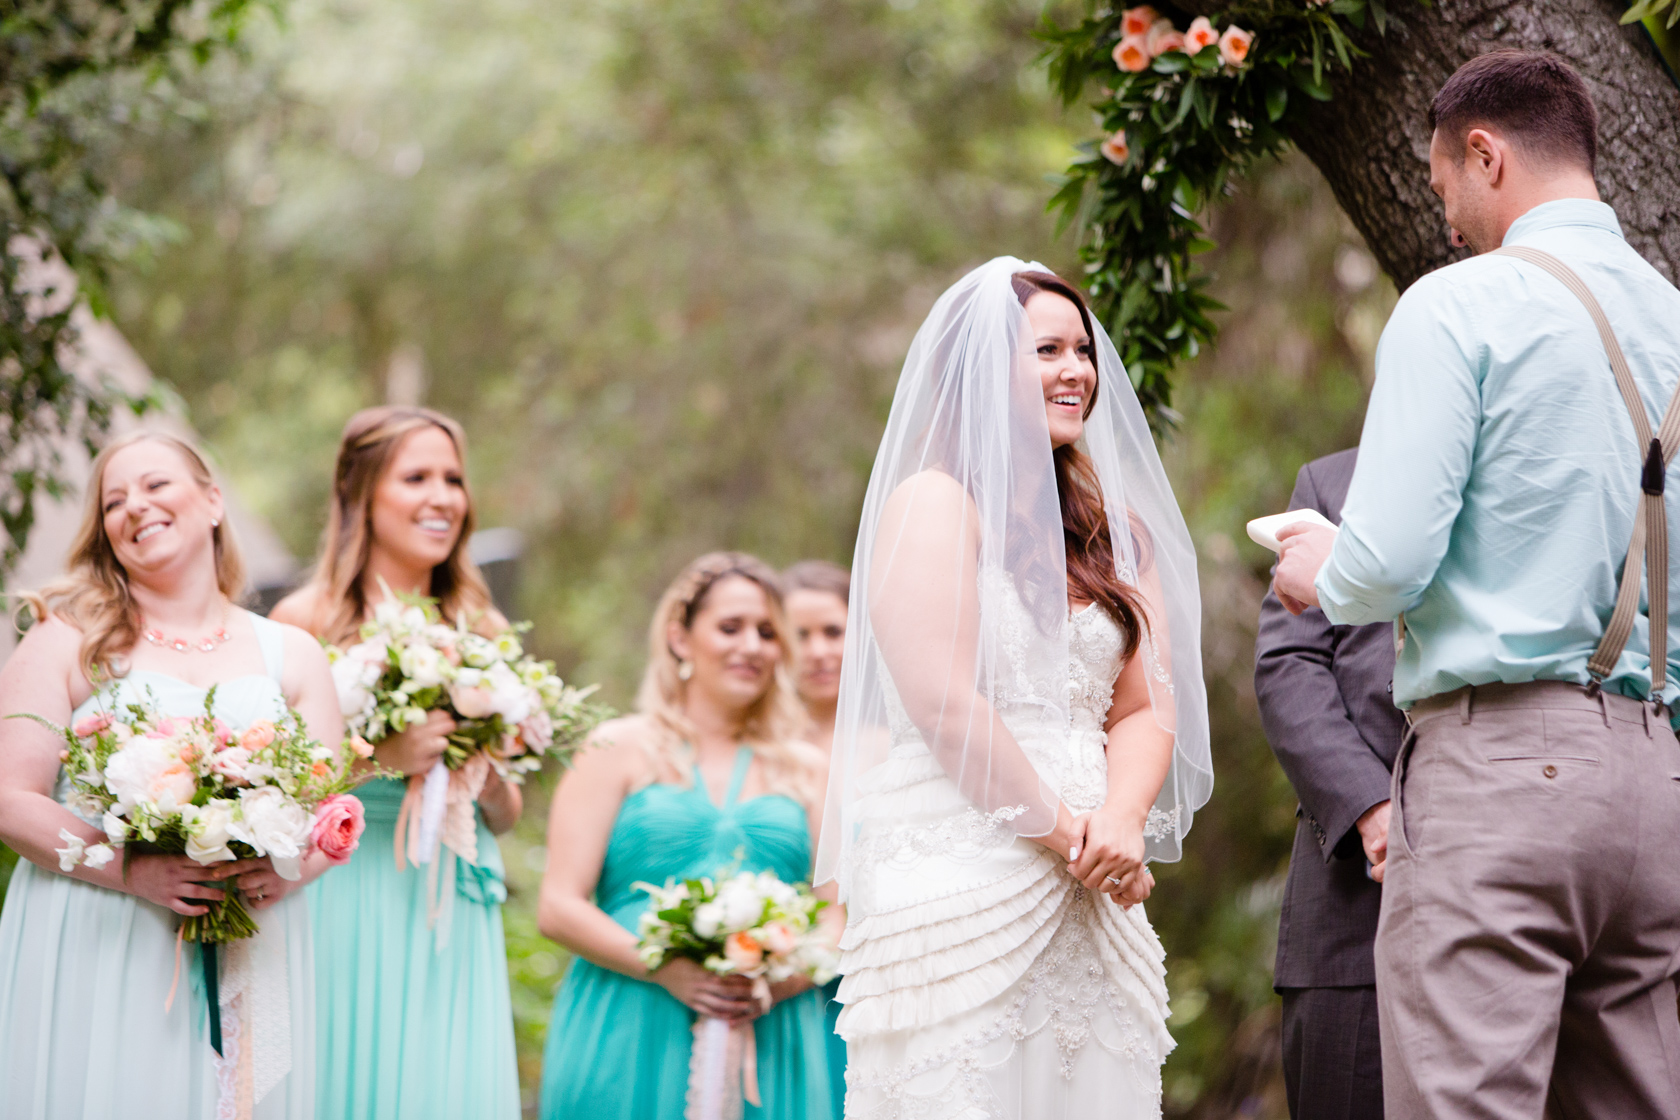 The_Printed_Palette_Wedding_at_Calamigos_Ranch_076.jpg